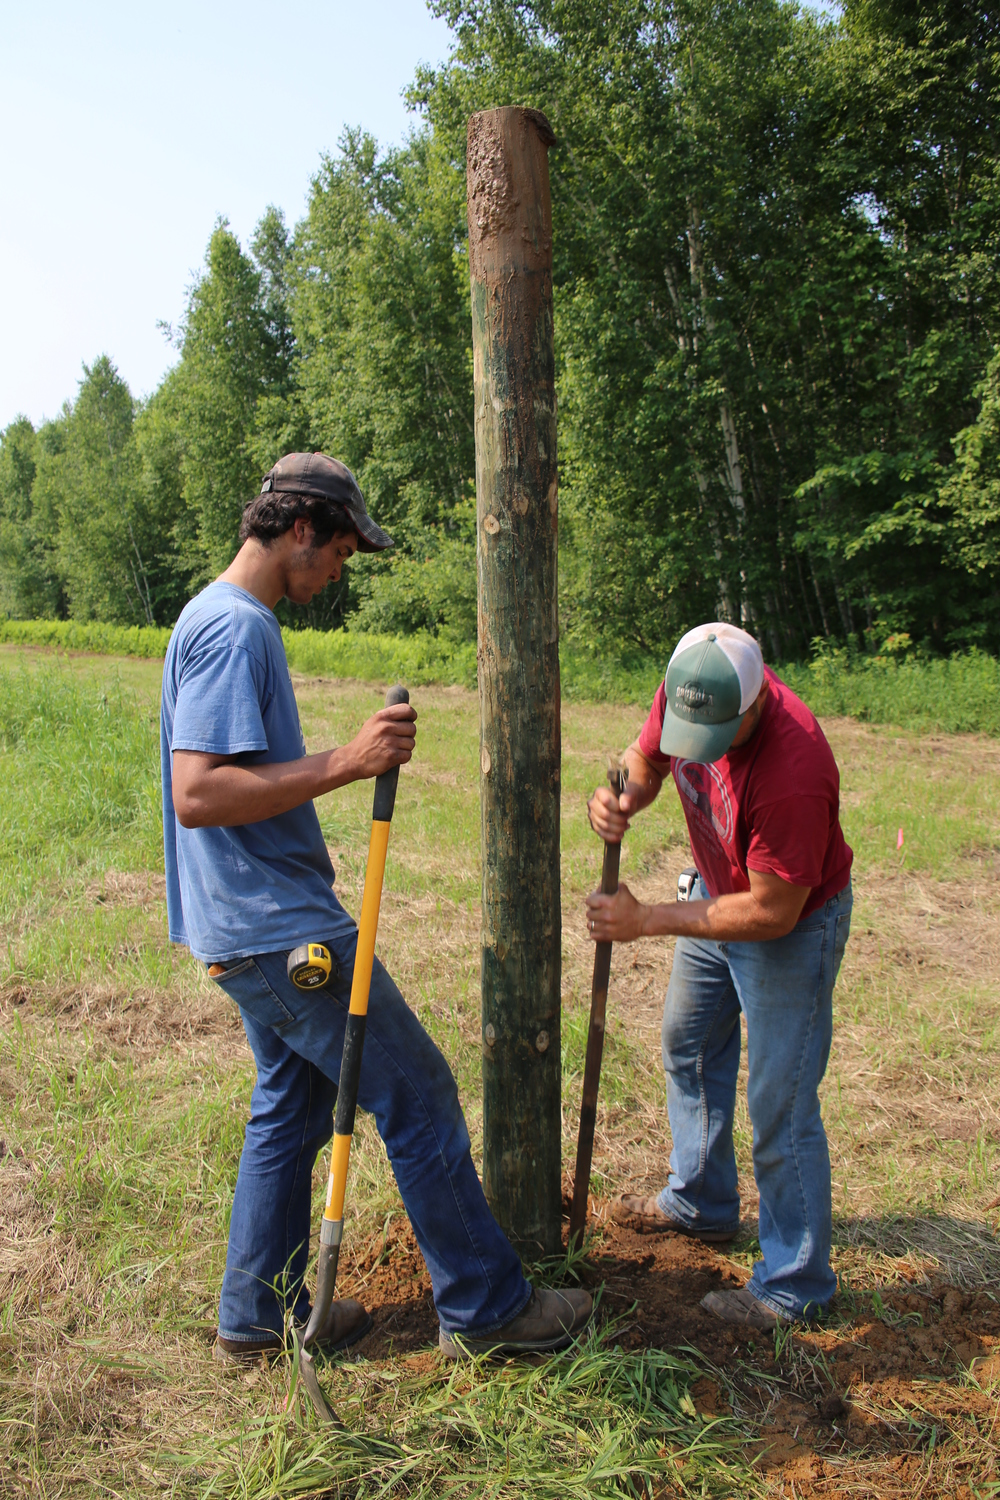 Tyler and Bryan shovel and tamp the soil around one of about 200 Red Pine posts in the South field.